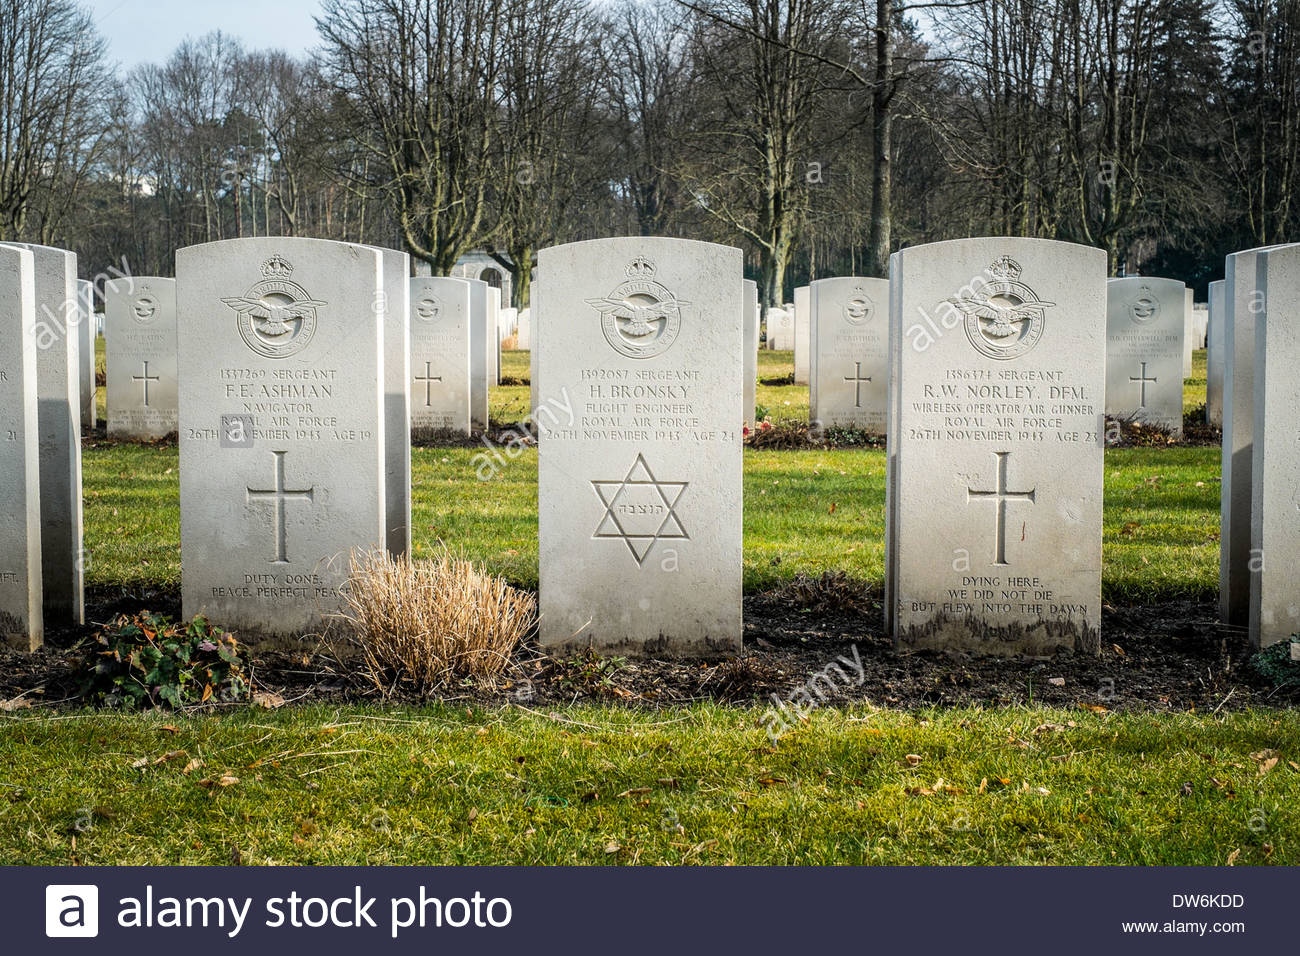 Berlin, Germany 1939 -1945 Commonwealth War Graves Commission Cemetery - Jewish Royal Air Force soldier - Star of David - Stock Image